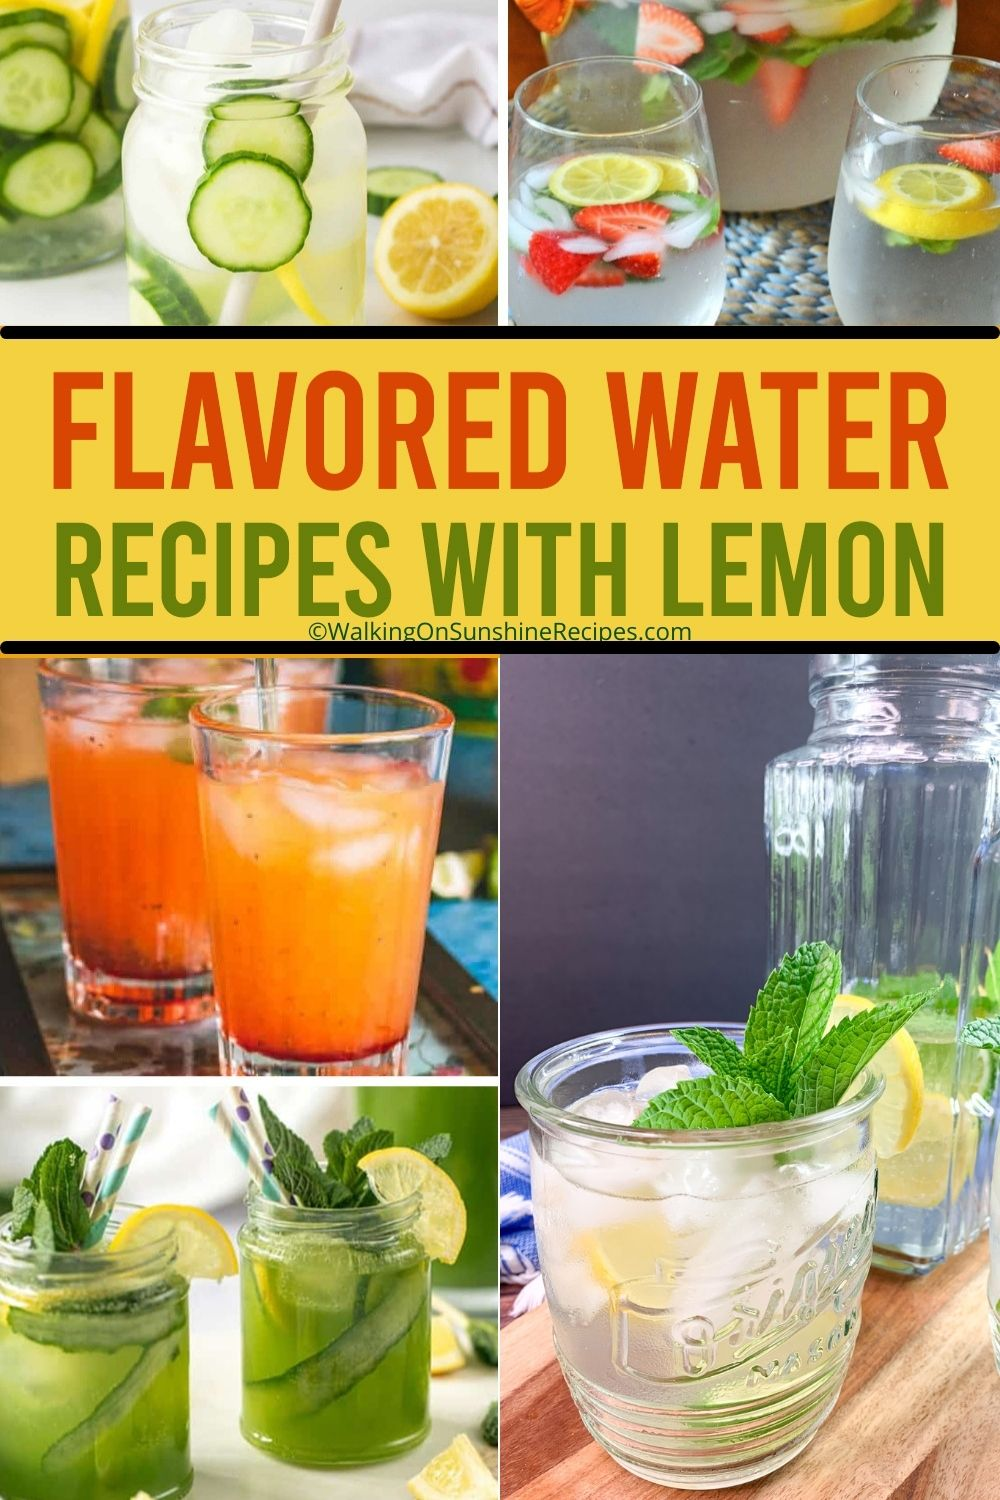 Flavored Water Recipes with Lemon Pin 2